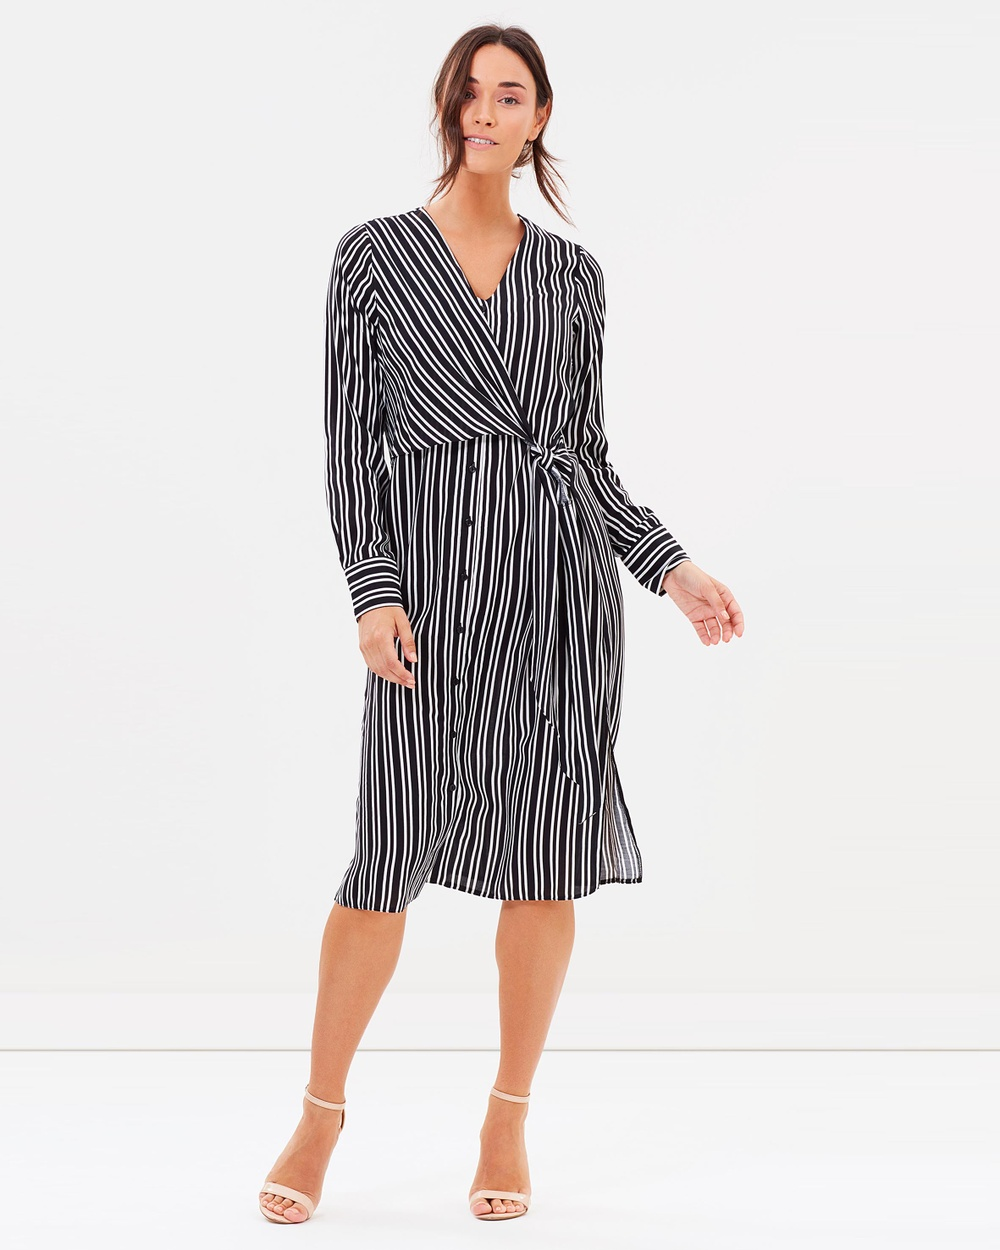 Dorothy Perkins Stripe Knot Shirt Dress Dresses Black Stripe Knot Shirt Dress